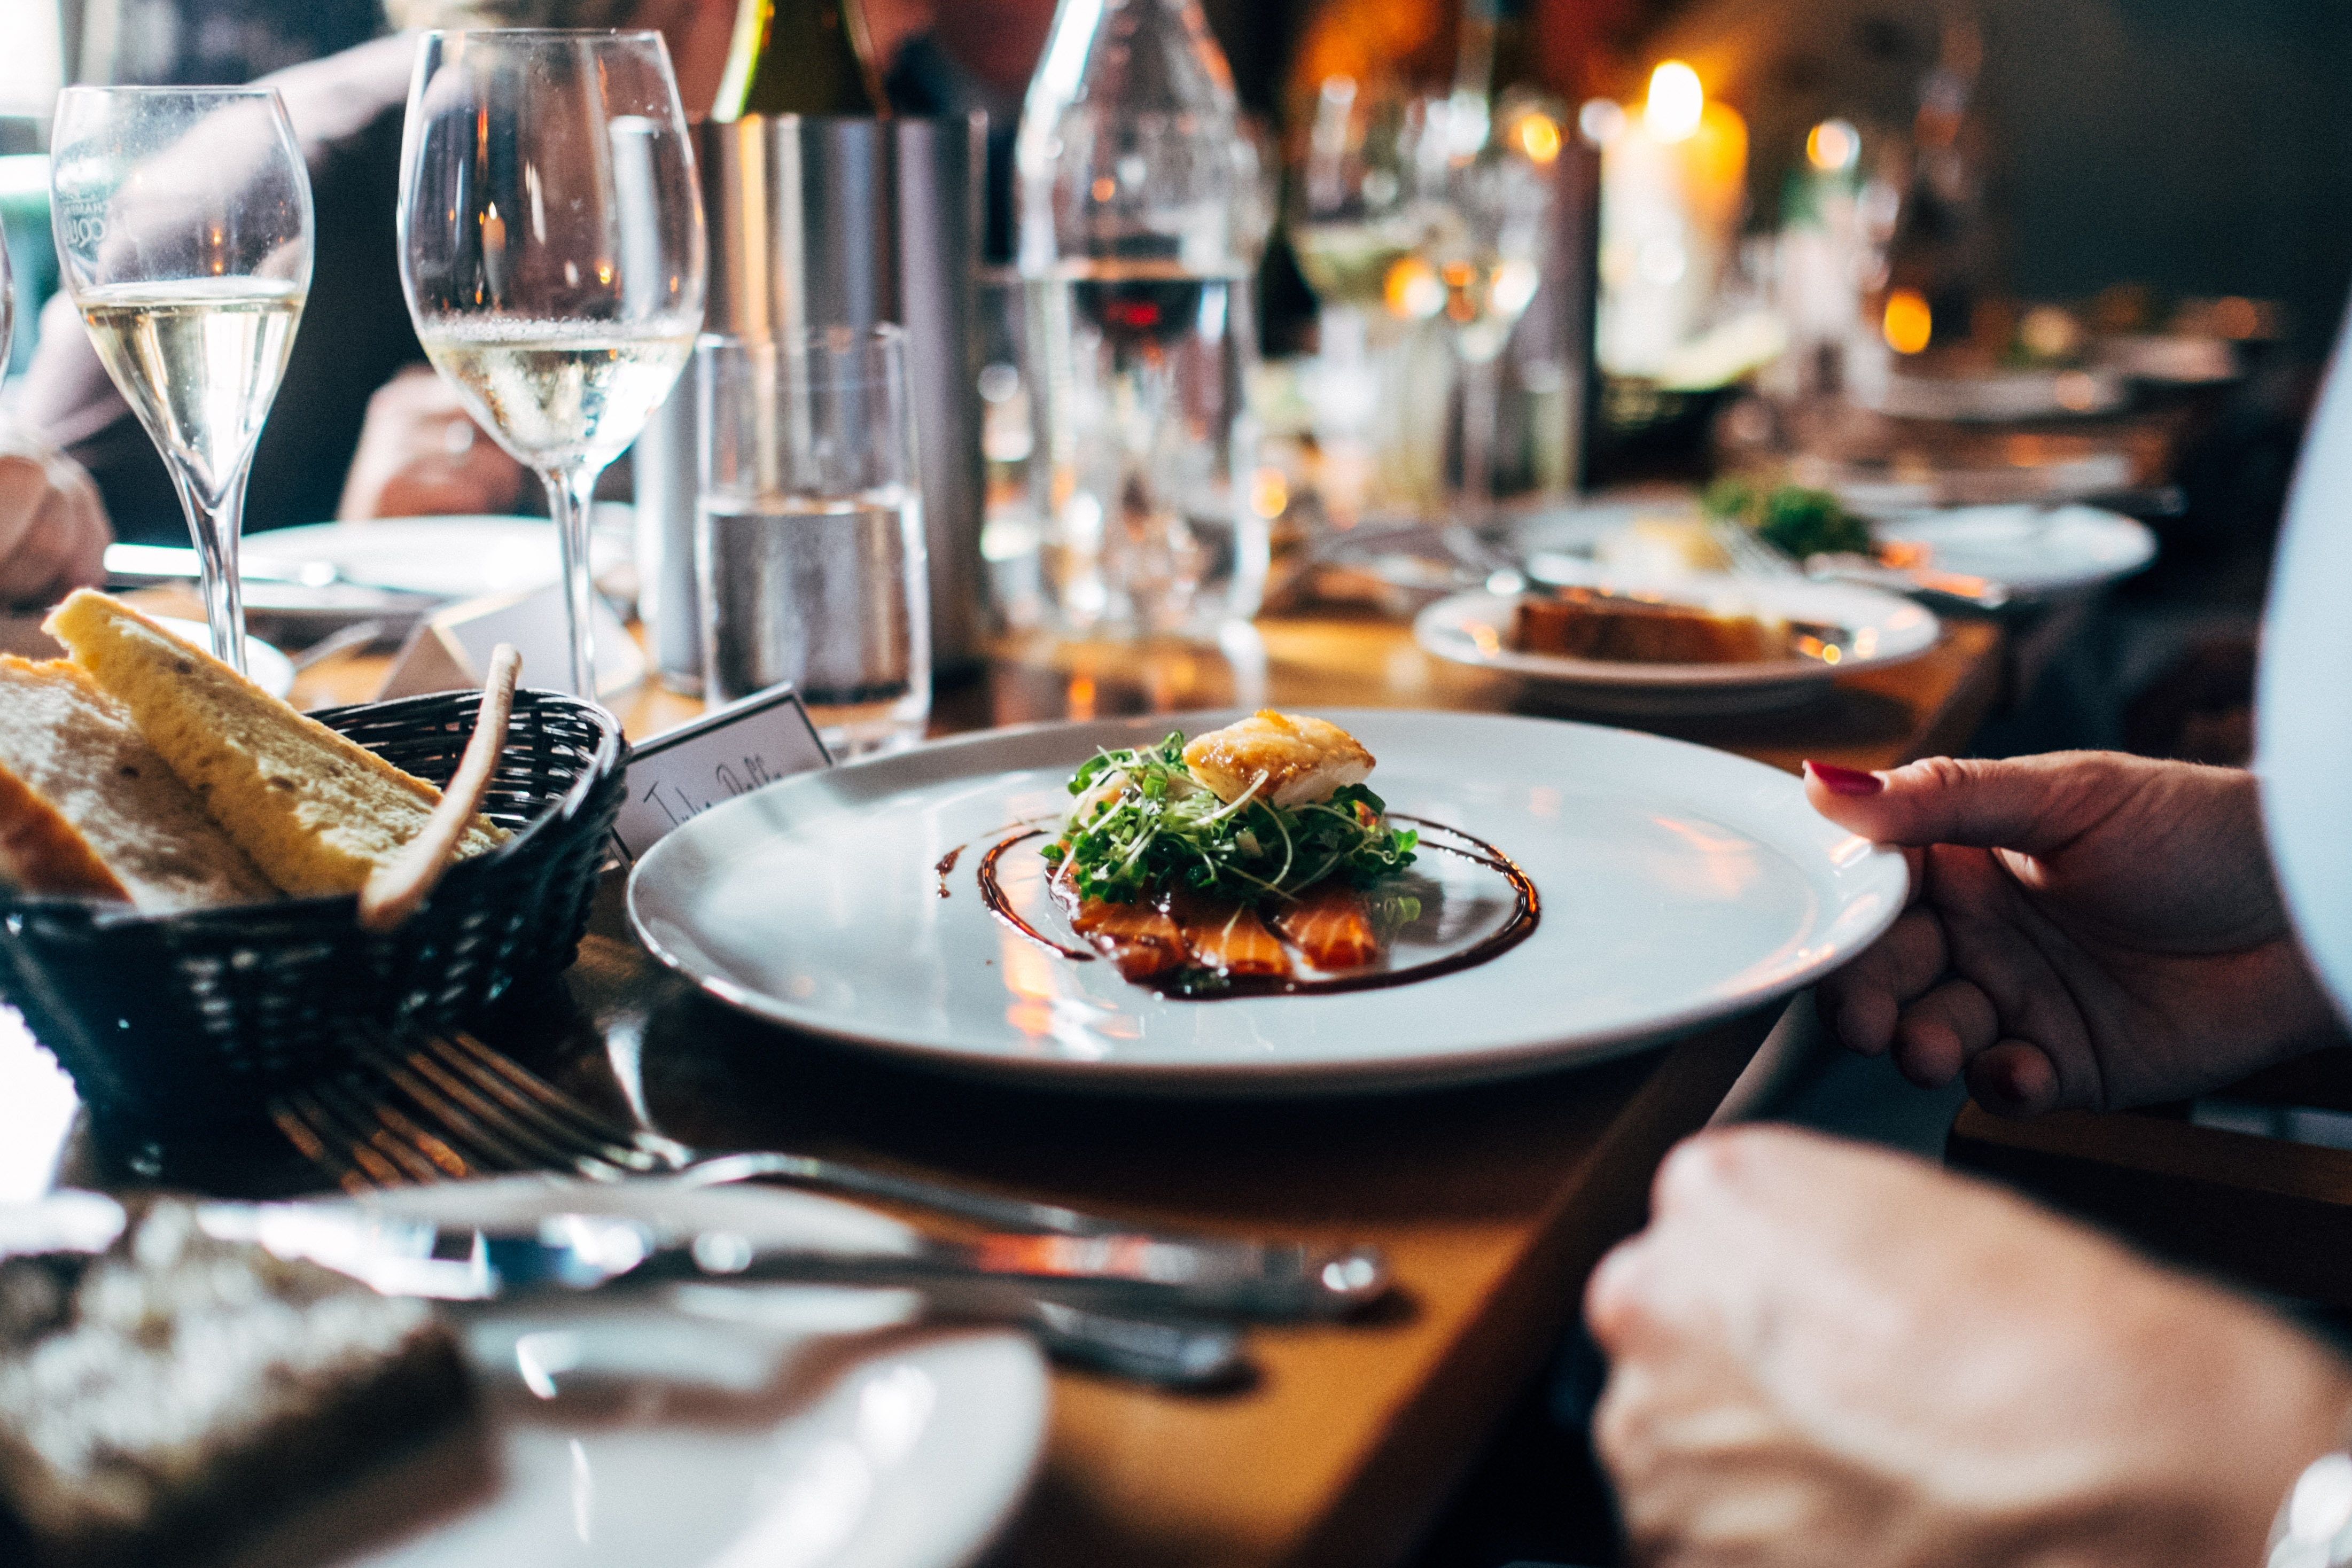 The Complete Guide to Expanding Your Restaurant Business